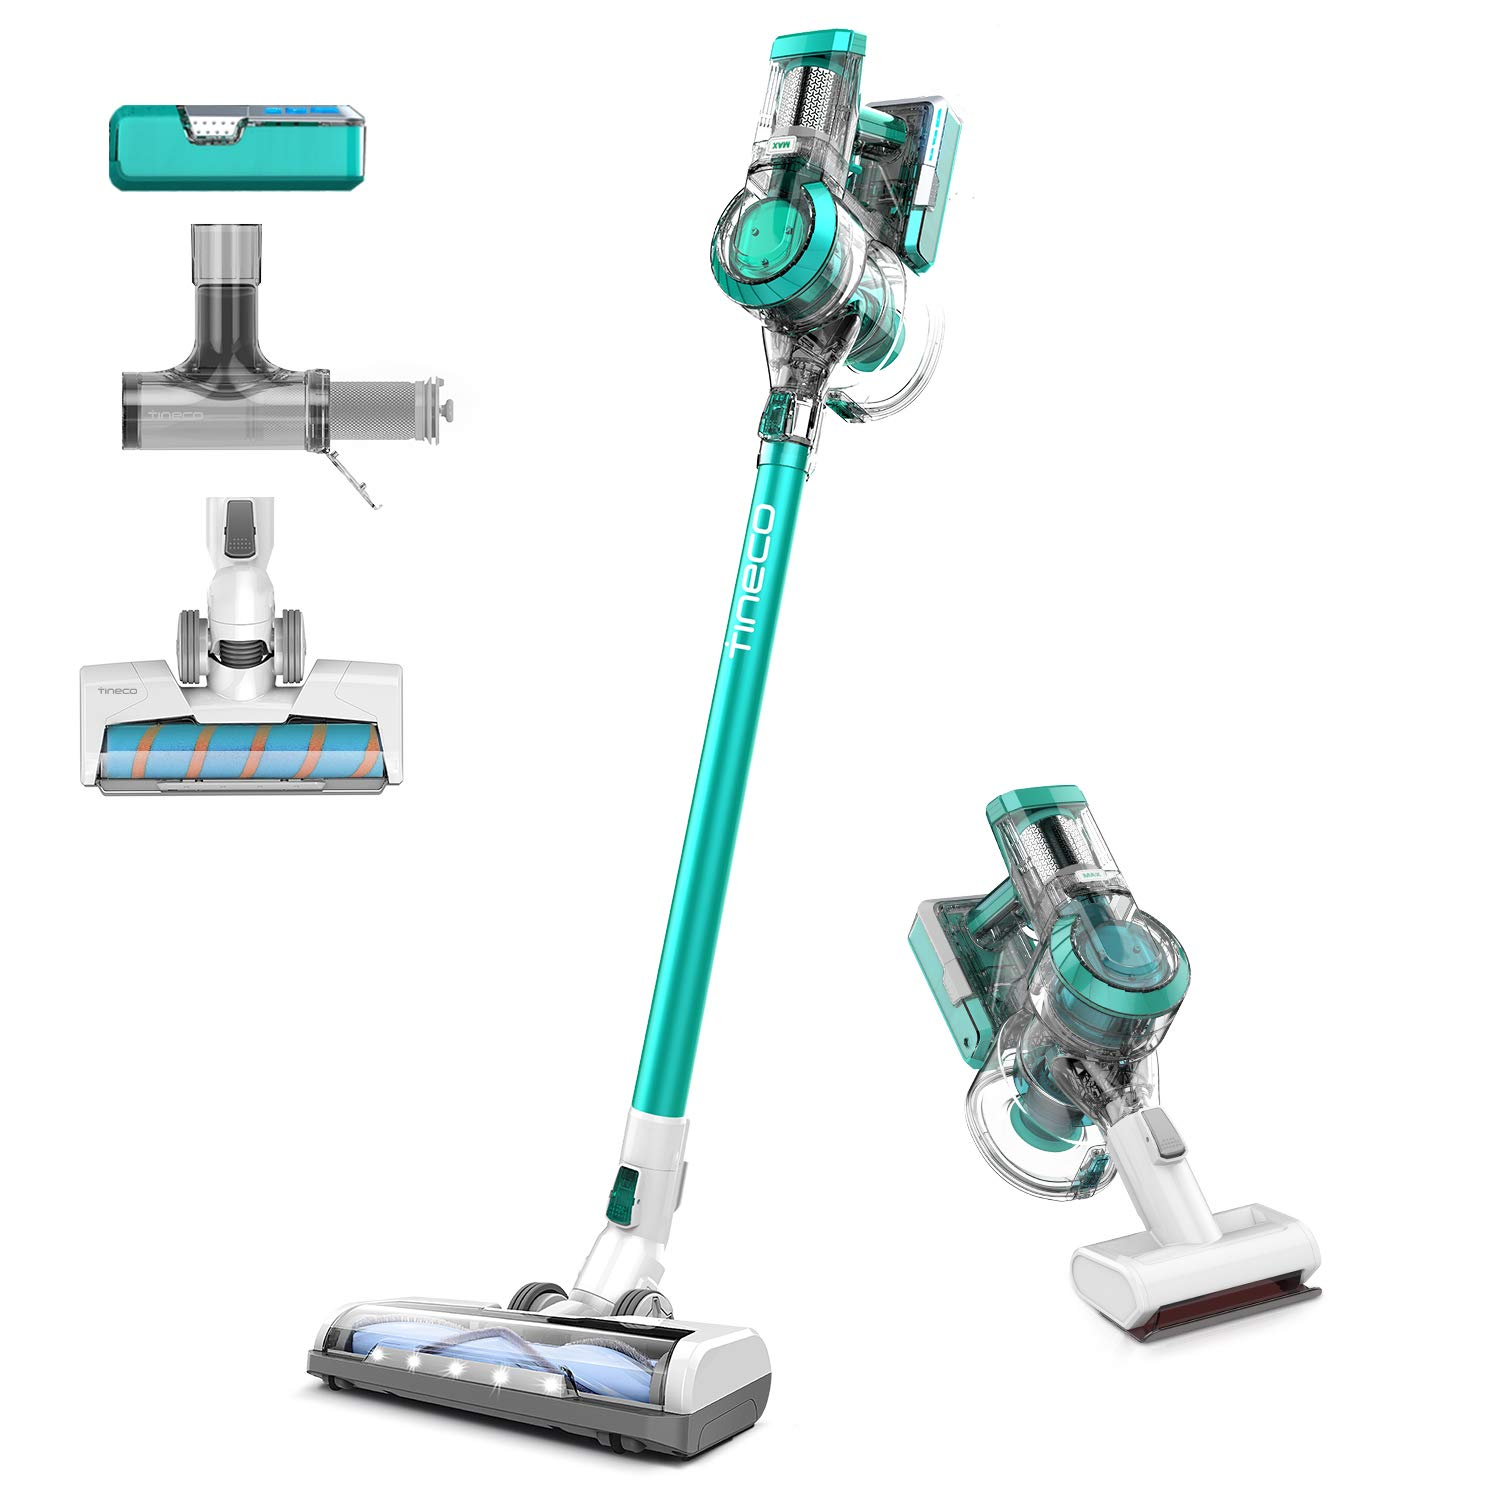 8. Tineco A11 Cordless Vacuum Cleaner